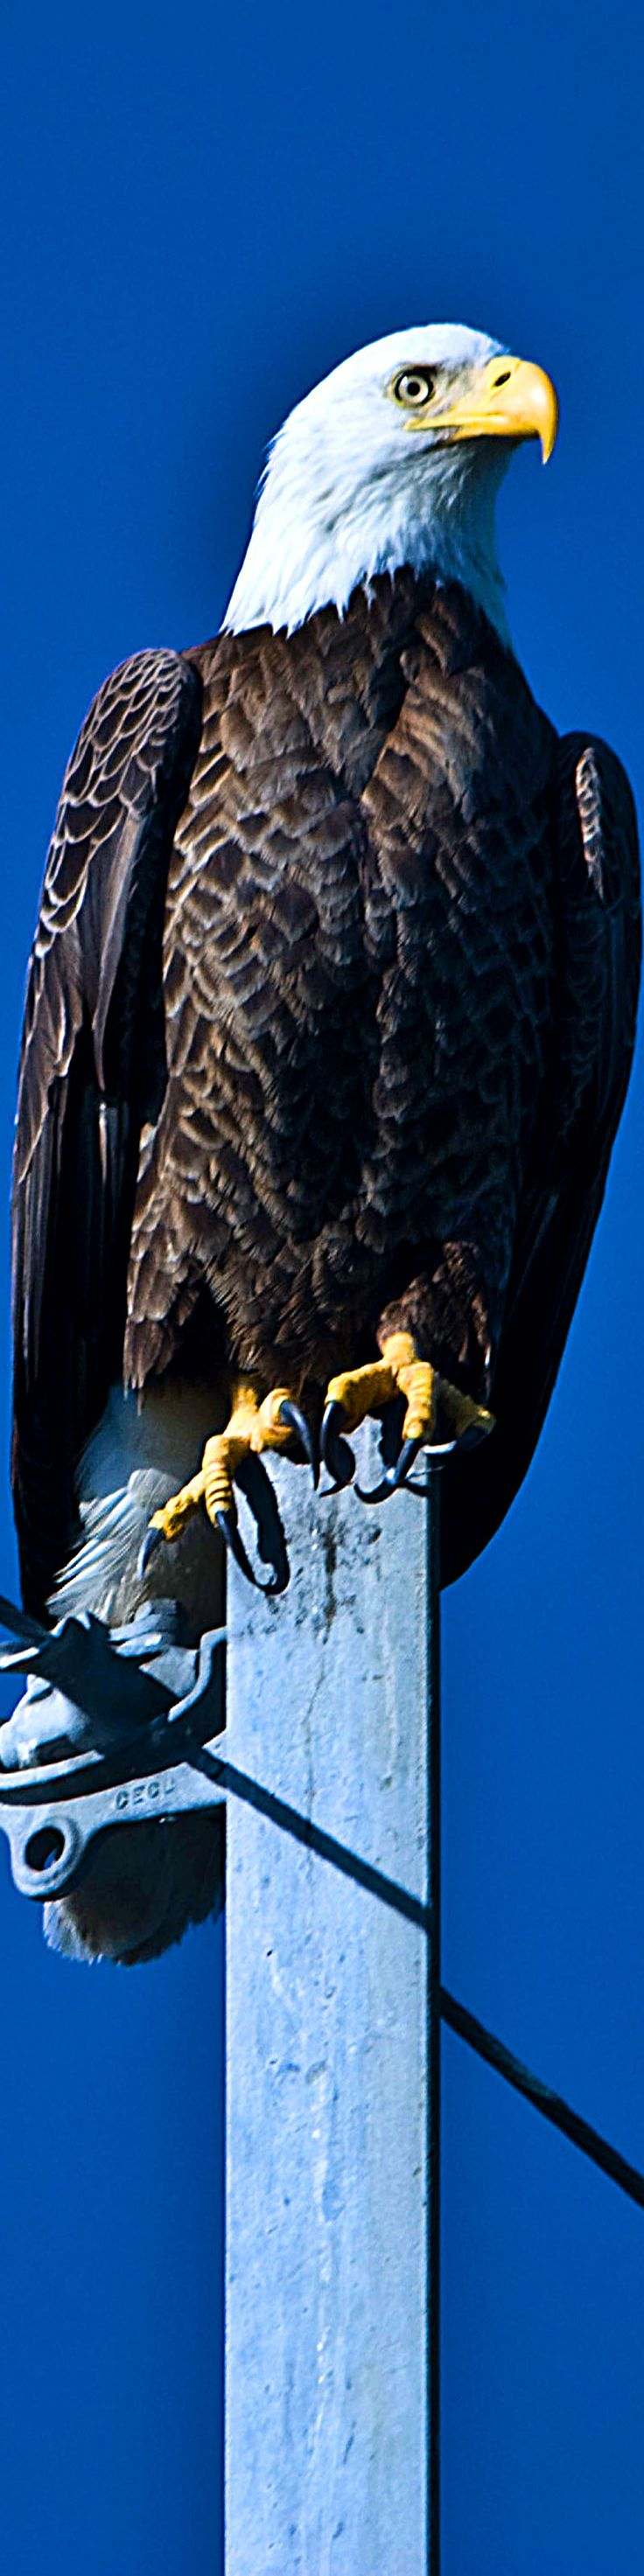 best 25 pictures of bald eagles ideas on pinterest bald eagle